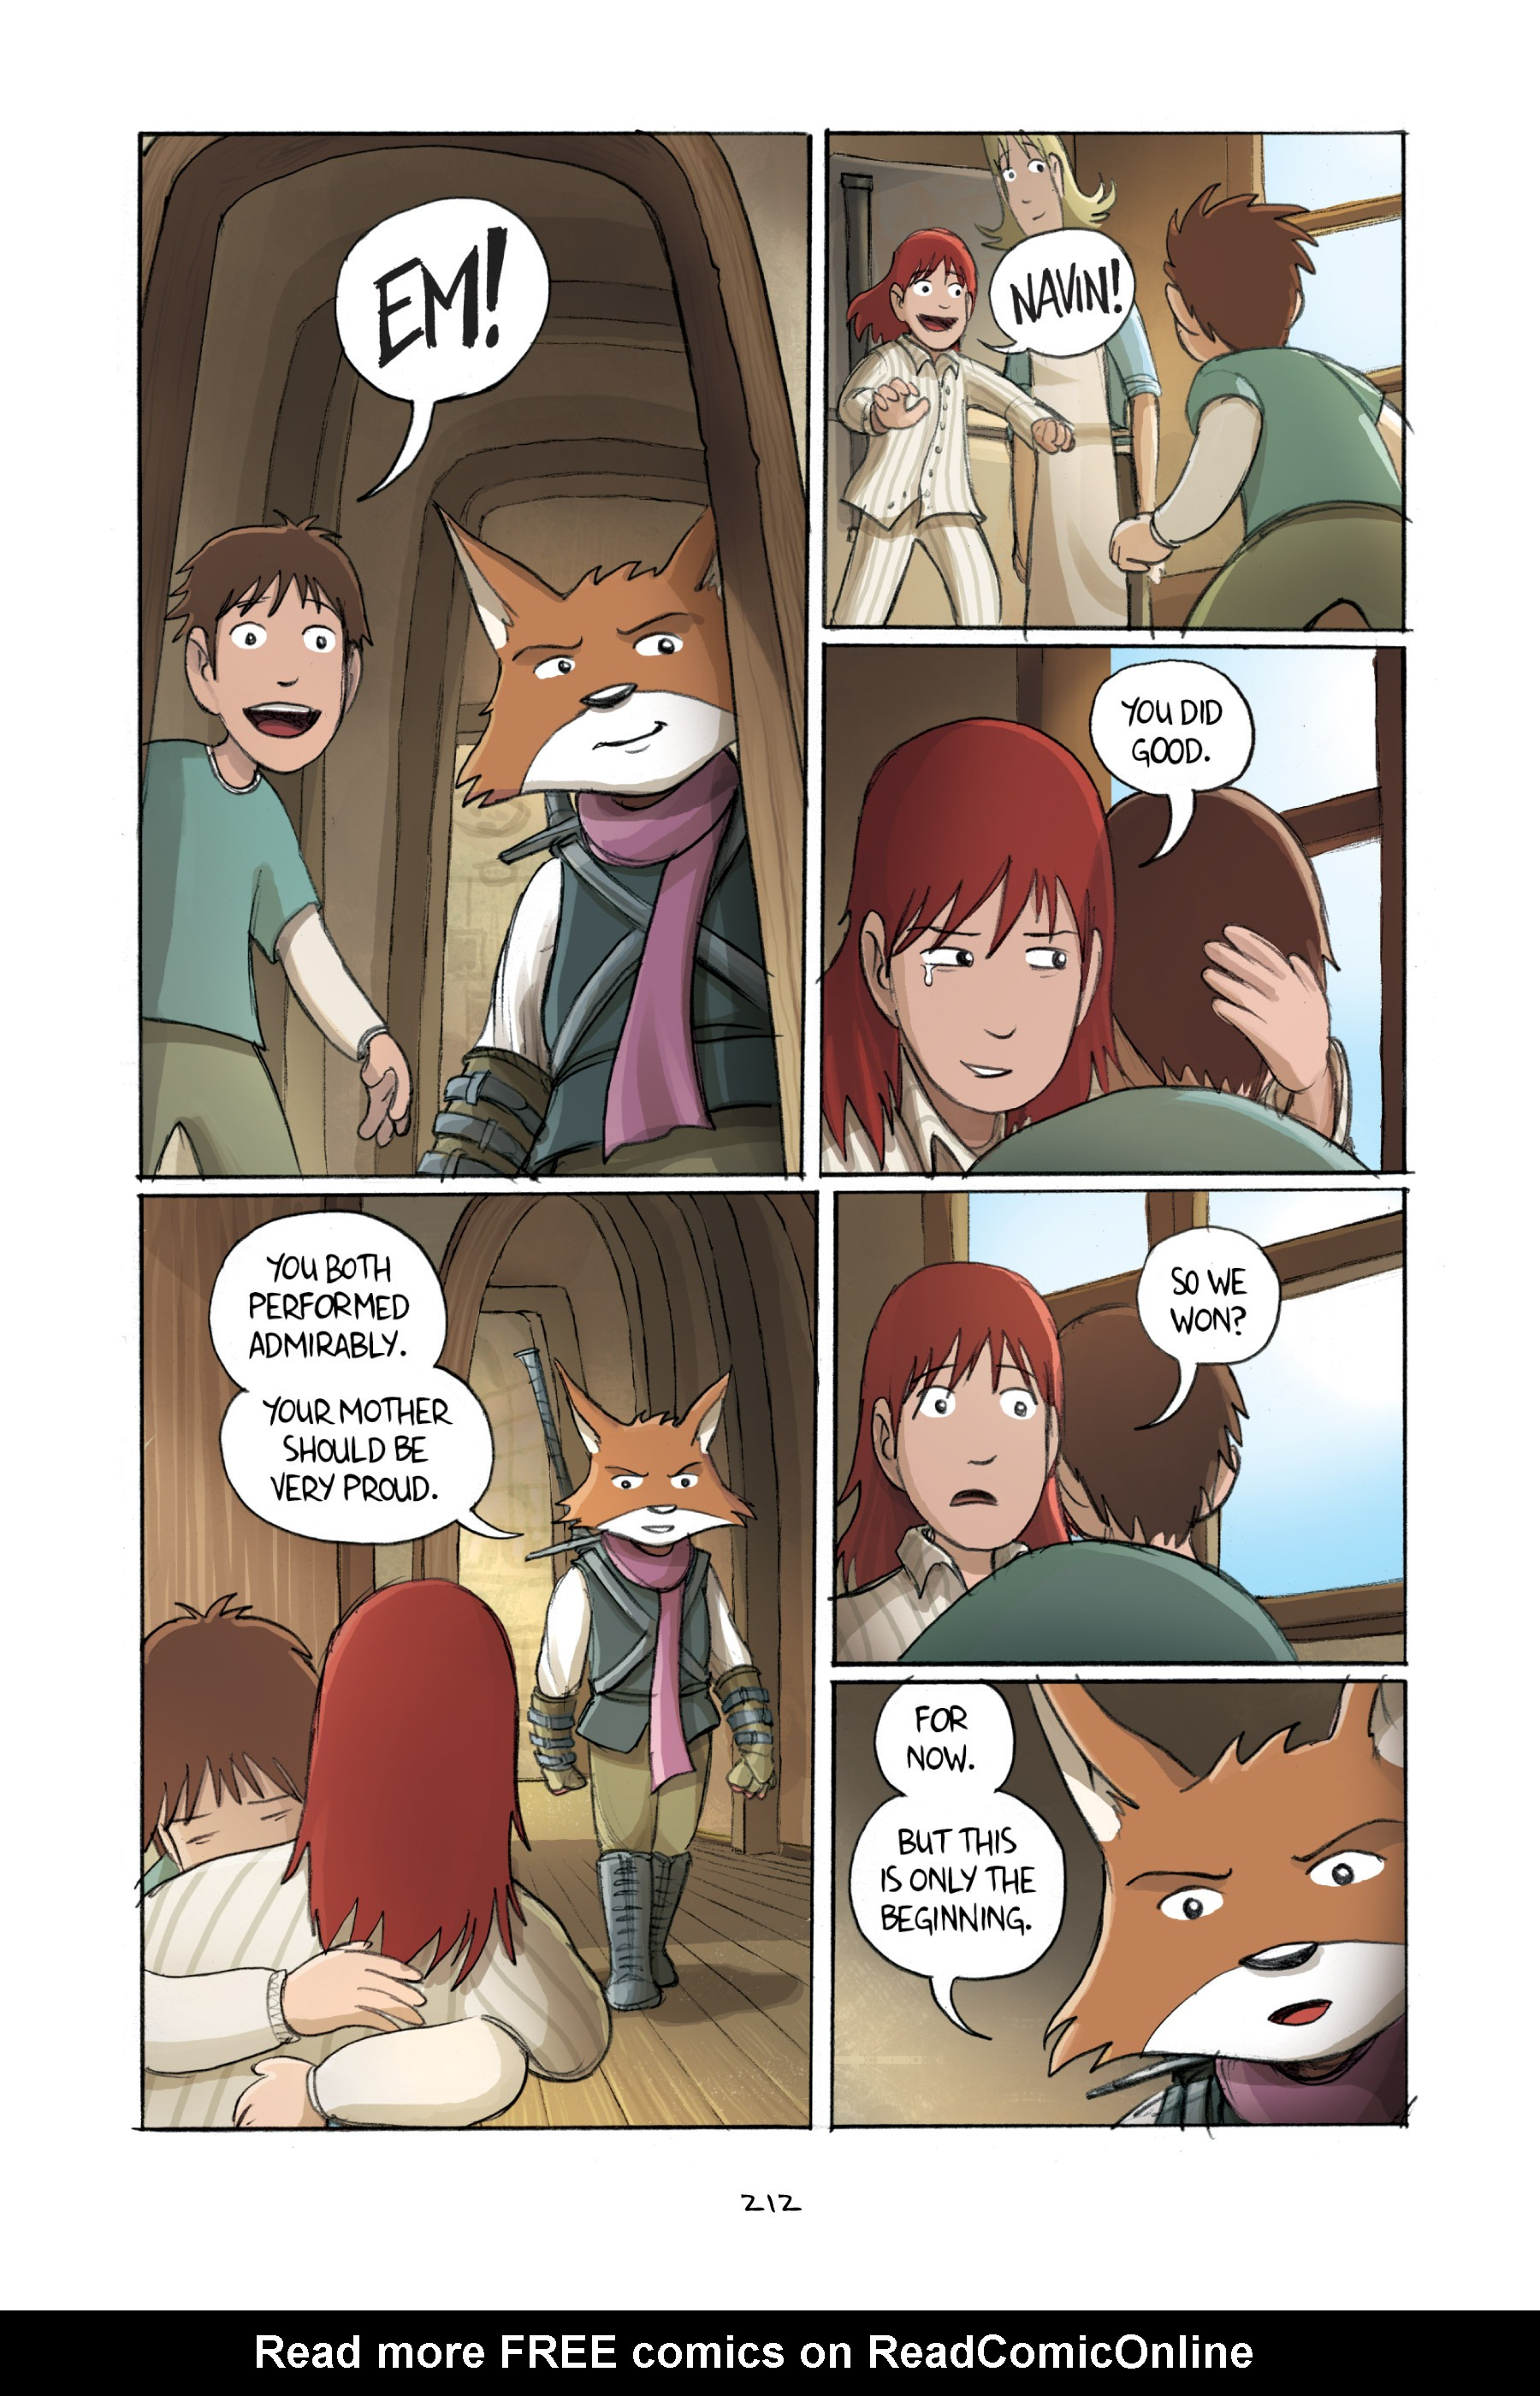 Read online Amulet comic -  Issue #2 - 209